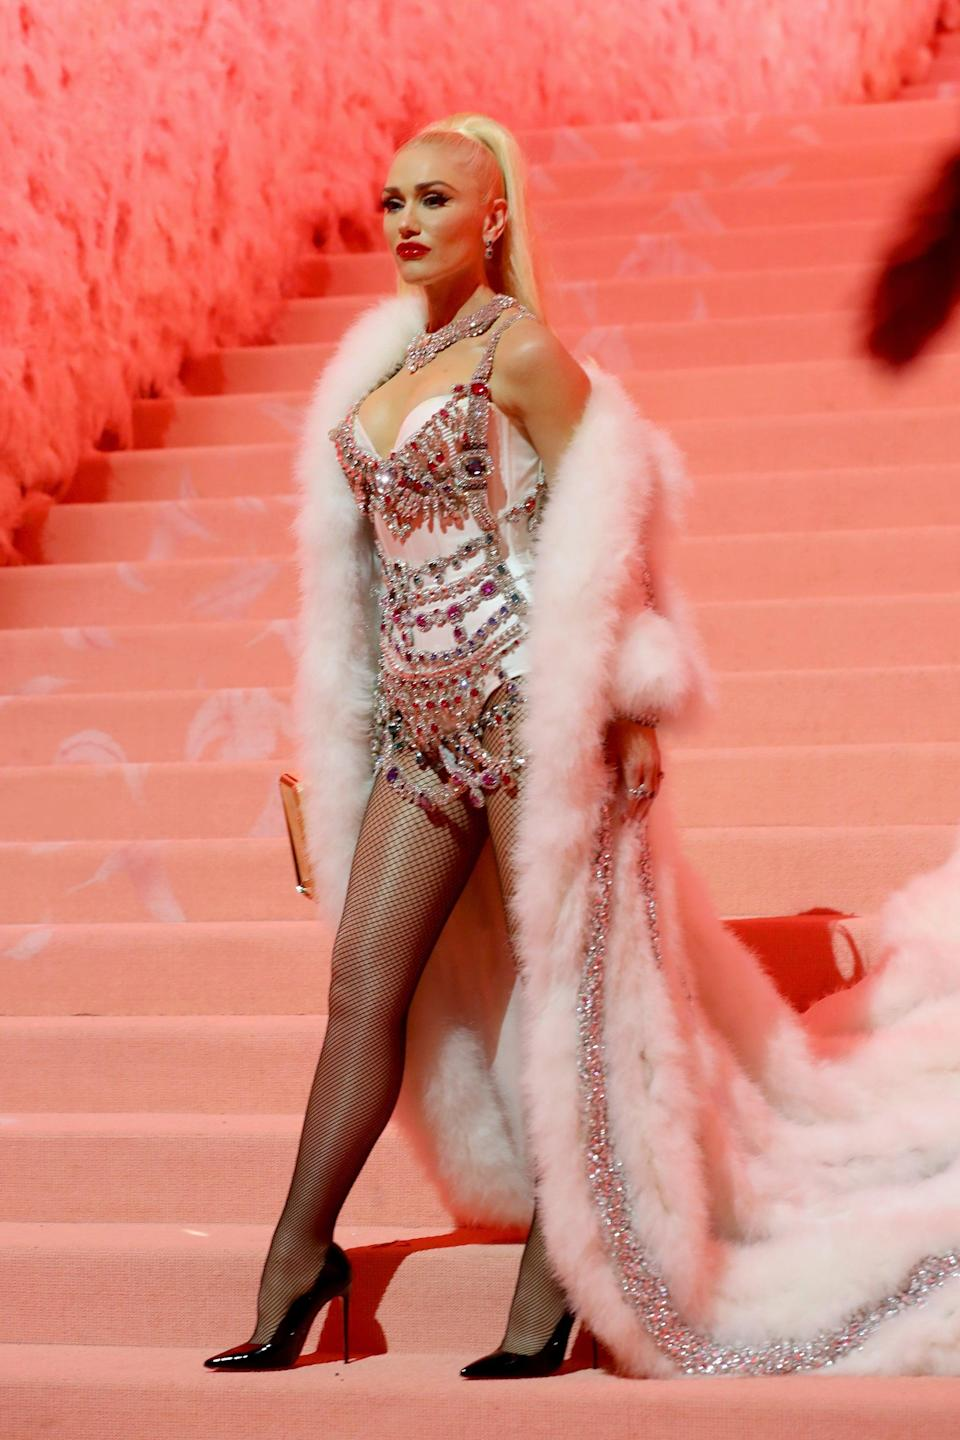 <p>At the 2019 Met Gala, Gwen completed this Moschino by Jeremy Scott look with Christian Louboutin patent pumps.</p>